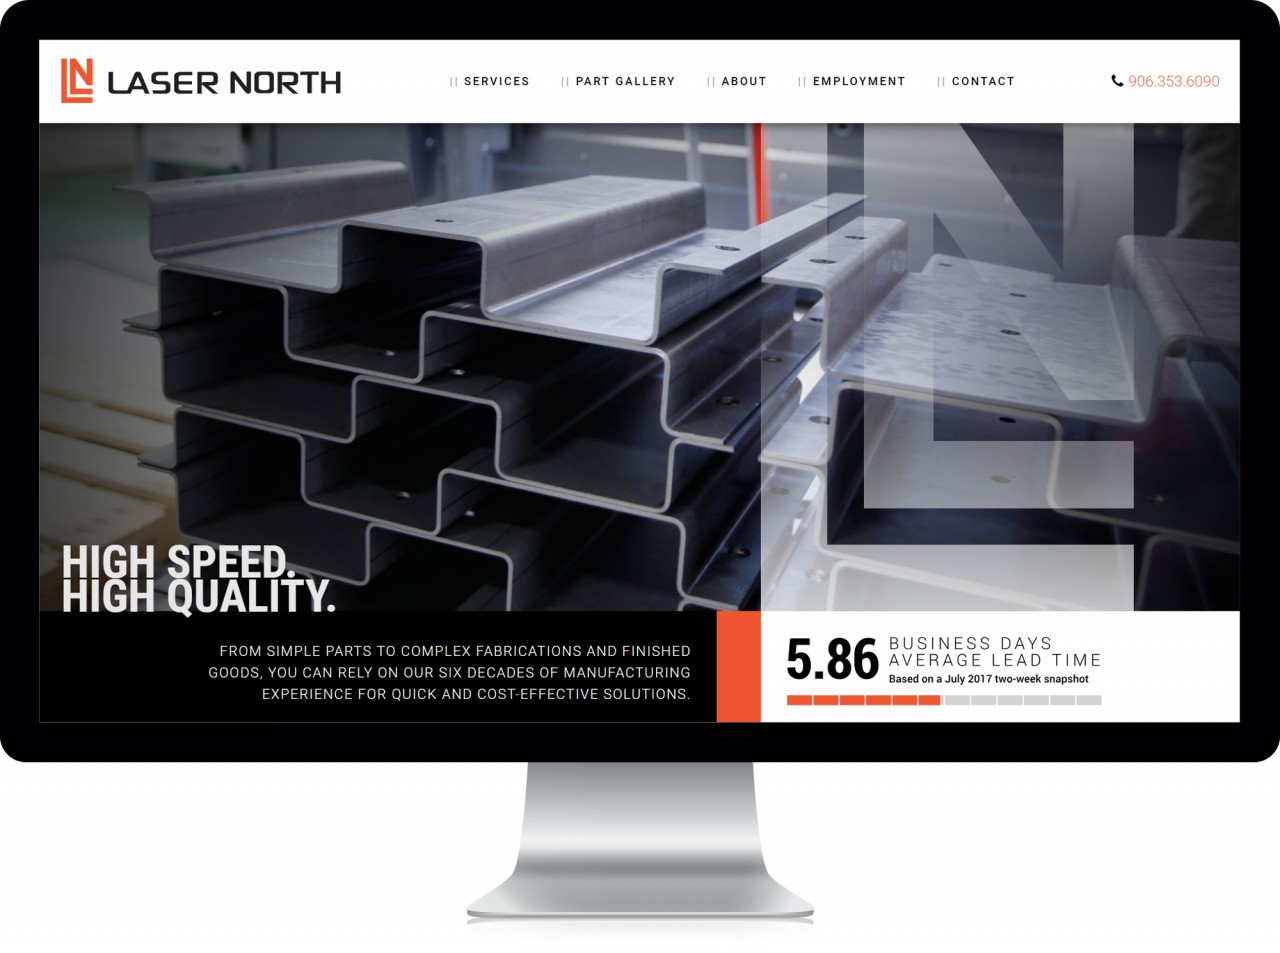 monte website design laser cutting